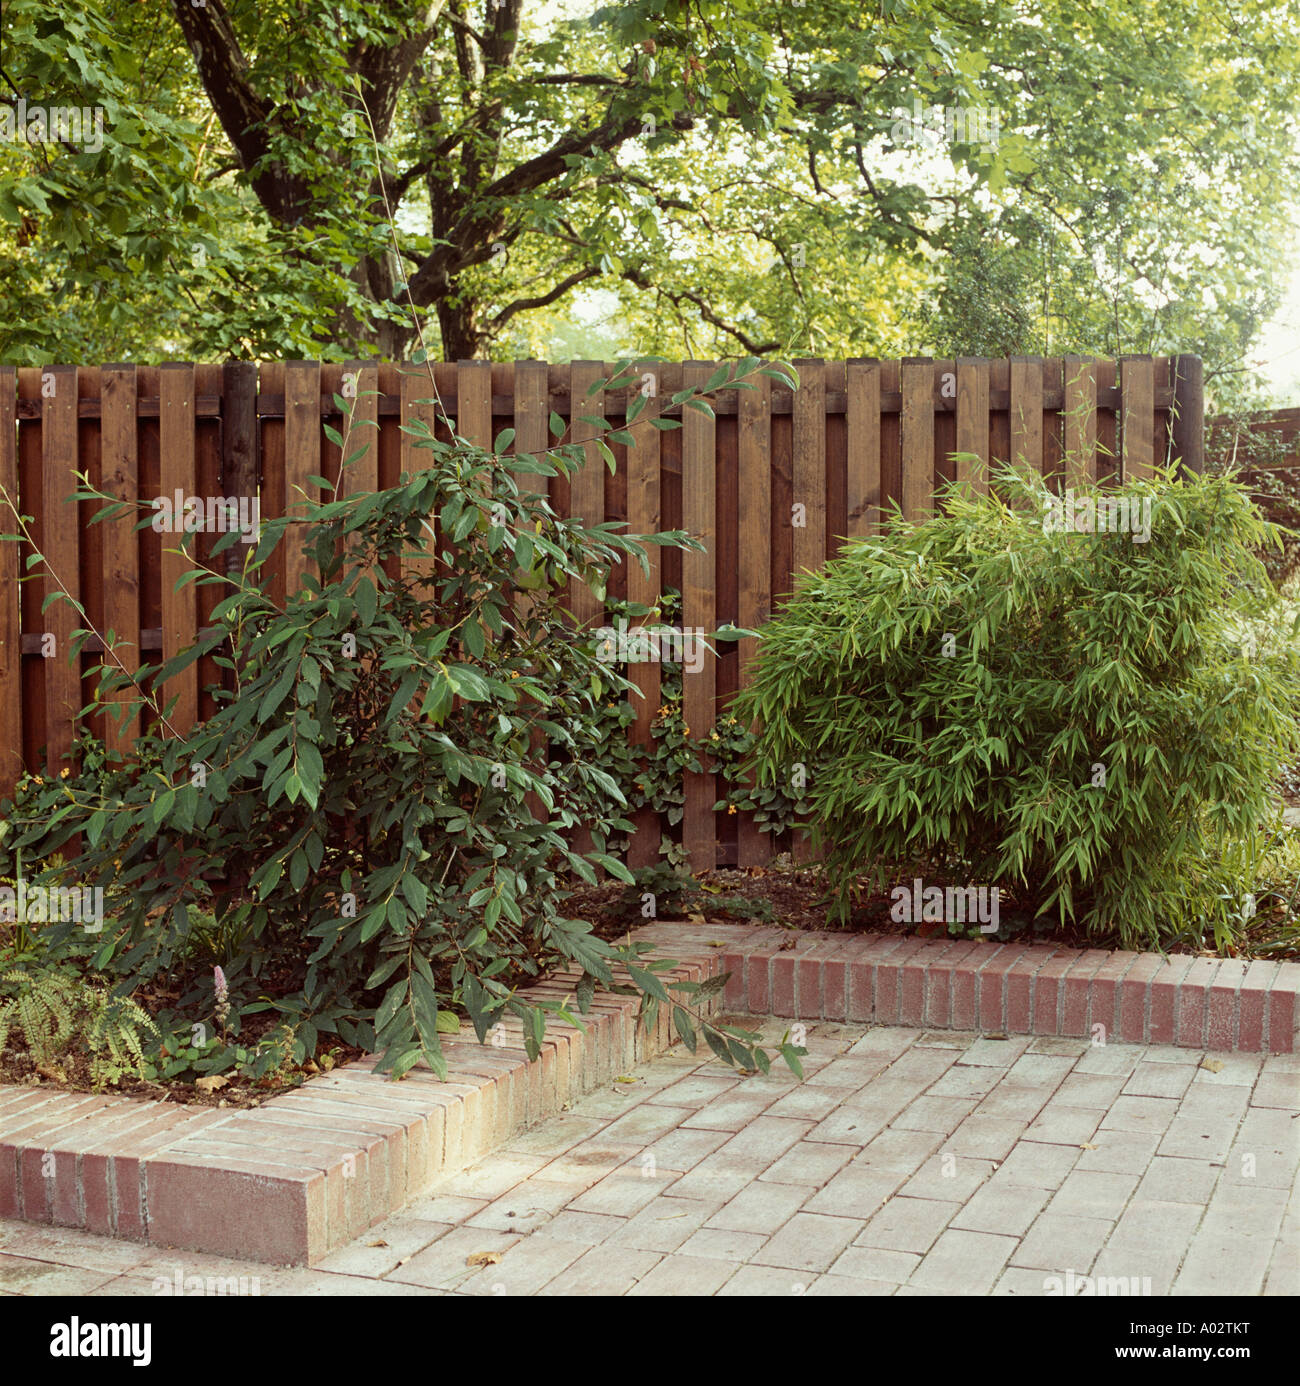 Border Edging Raised Stock Photos & Border Edging Raised Stock ...